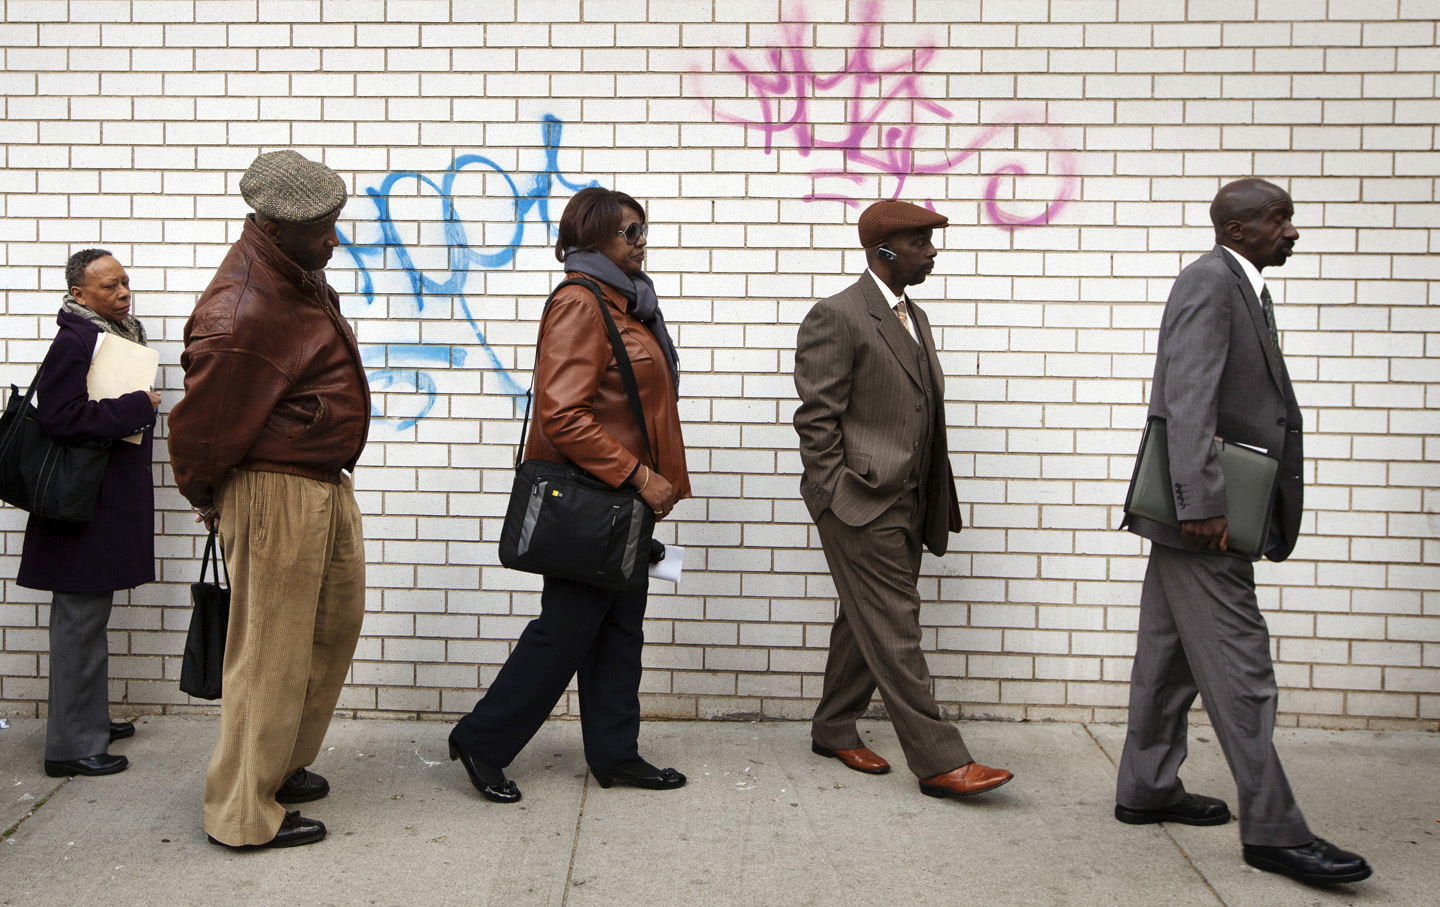 Racial wealth inequality overlooked as cause of urban unrest, study says